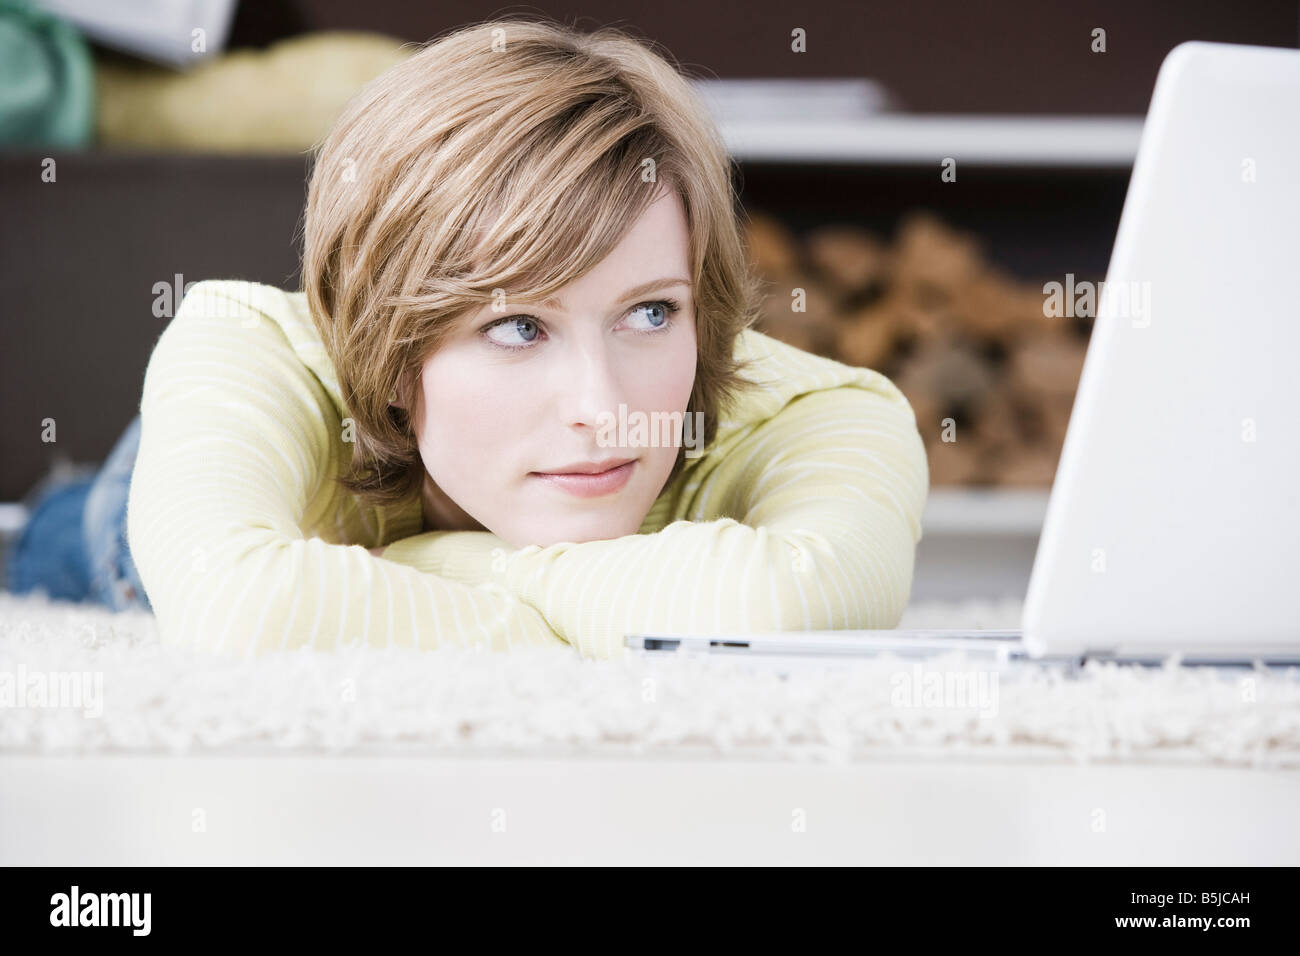 portrait of young woman lying on floor at home in front of laptop computer - Stock Image